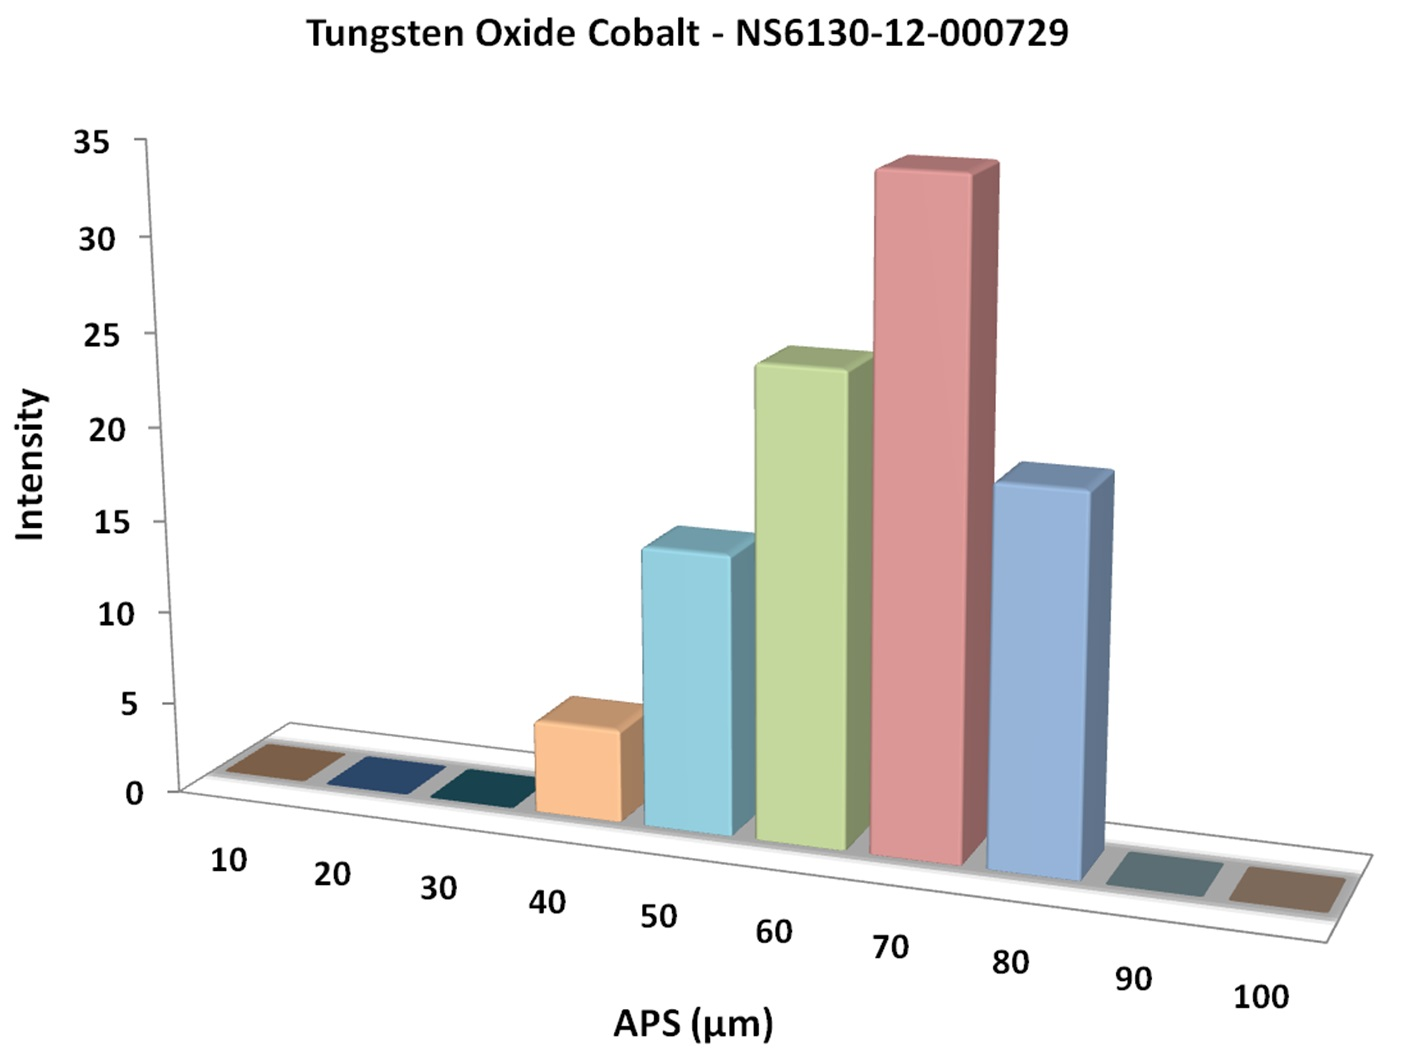 Particles Size Analysis - Tungsten Oxide Cobalt